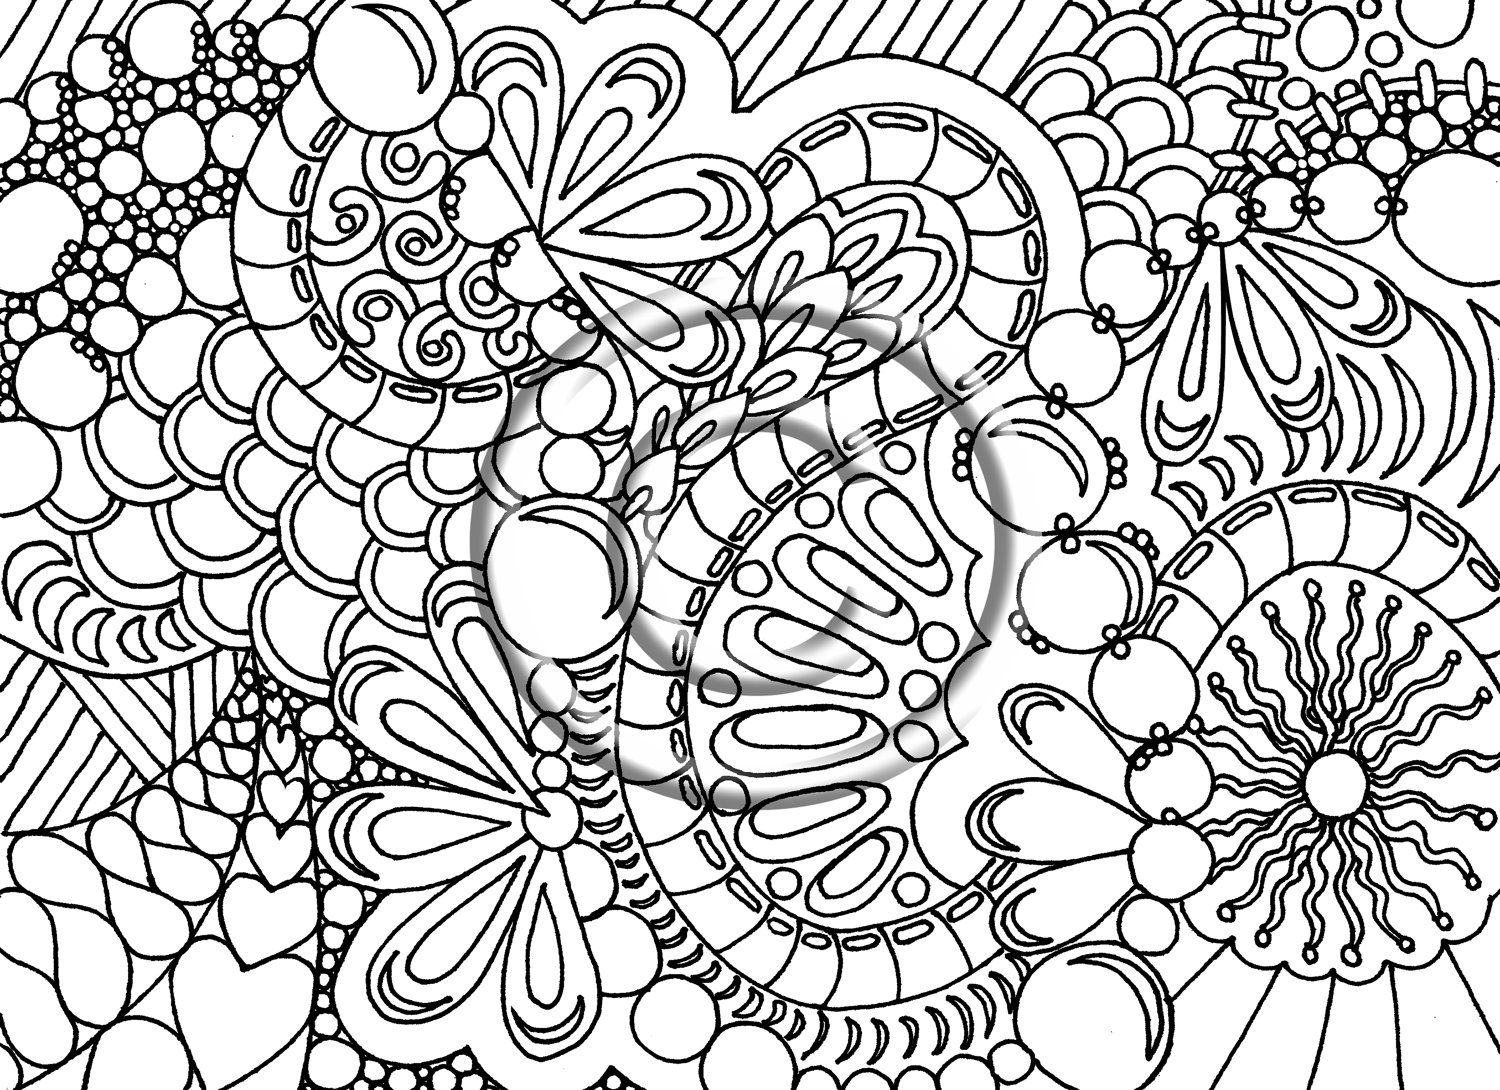 Coloring Pages Fair Color By Number For Adults Hard Teenagers Difficult